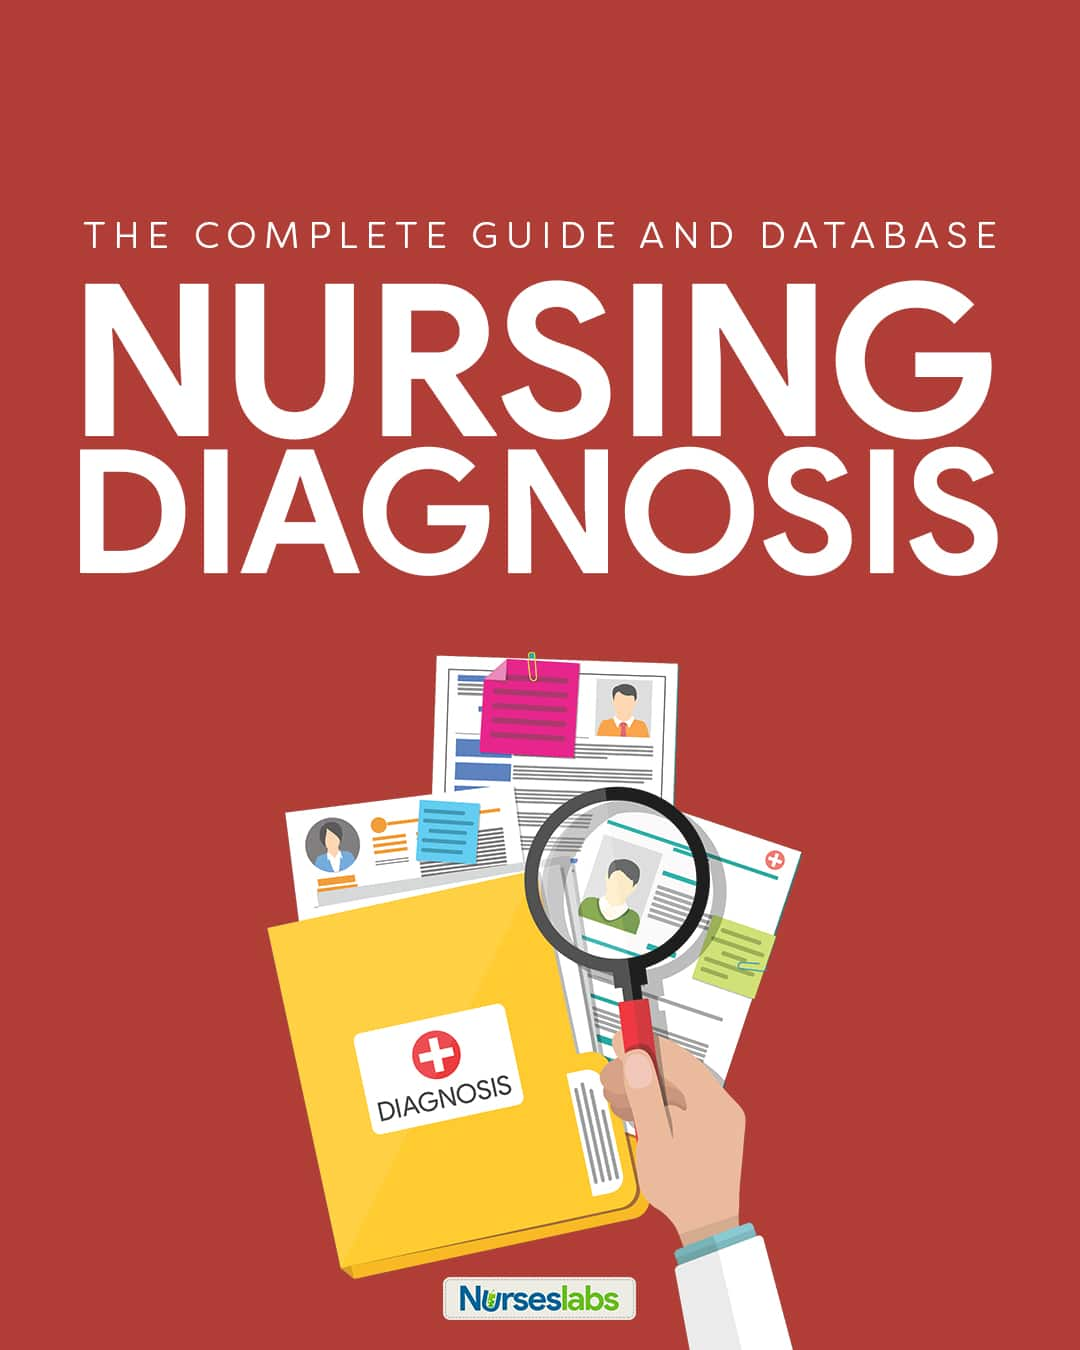 Nanda Nursing Diagnosis List 2020 Pdf.Nursing Diagnosis Complete Guide And List For 2019